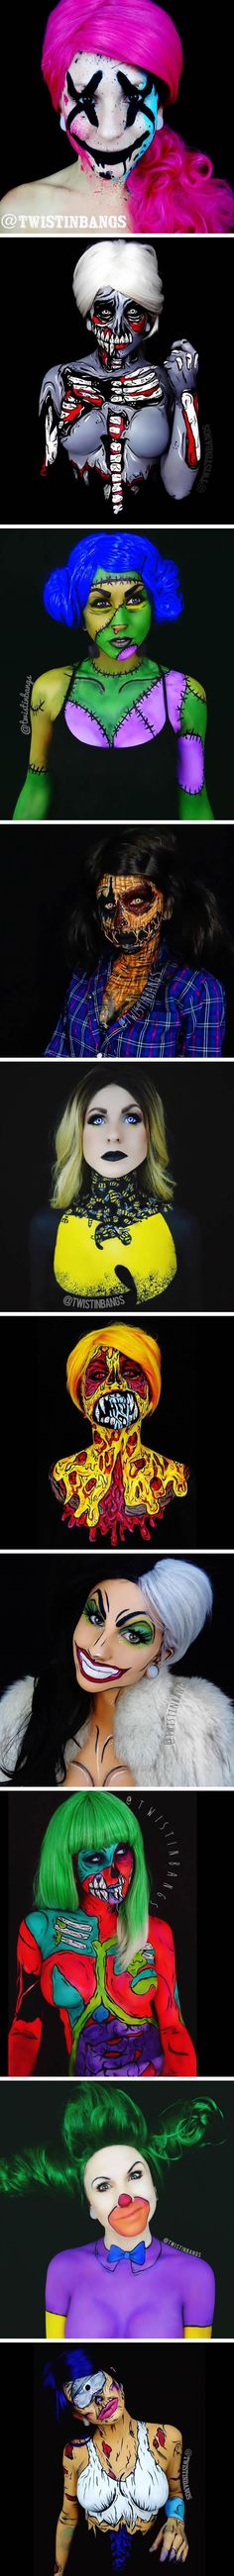 This girl's body paint is unreal. - 9GAG